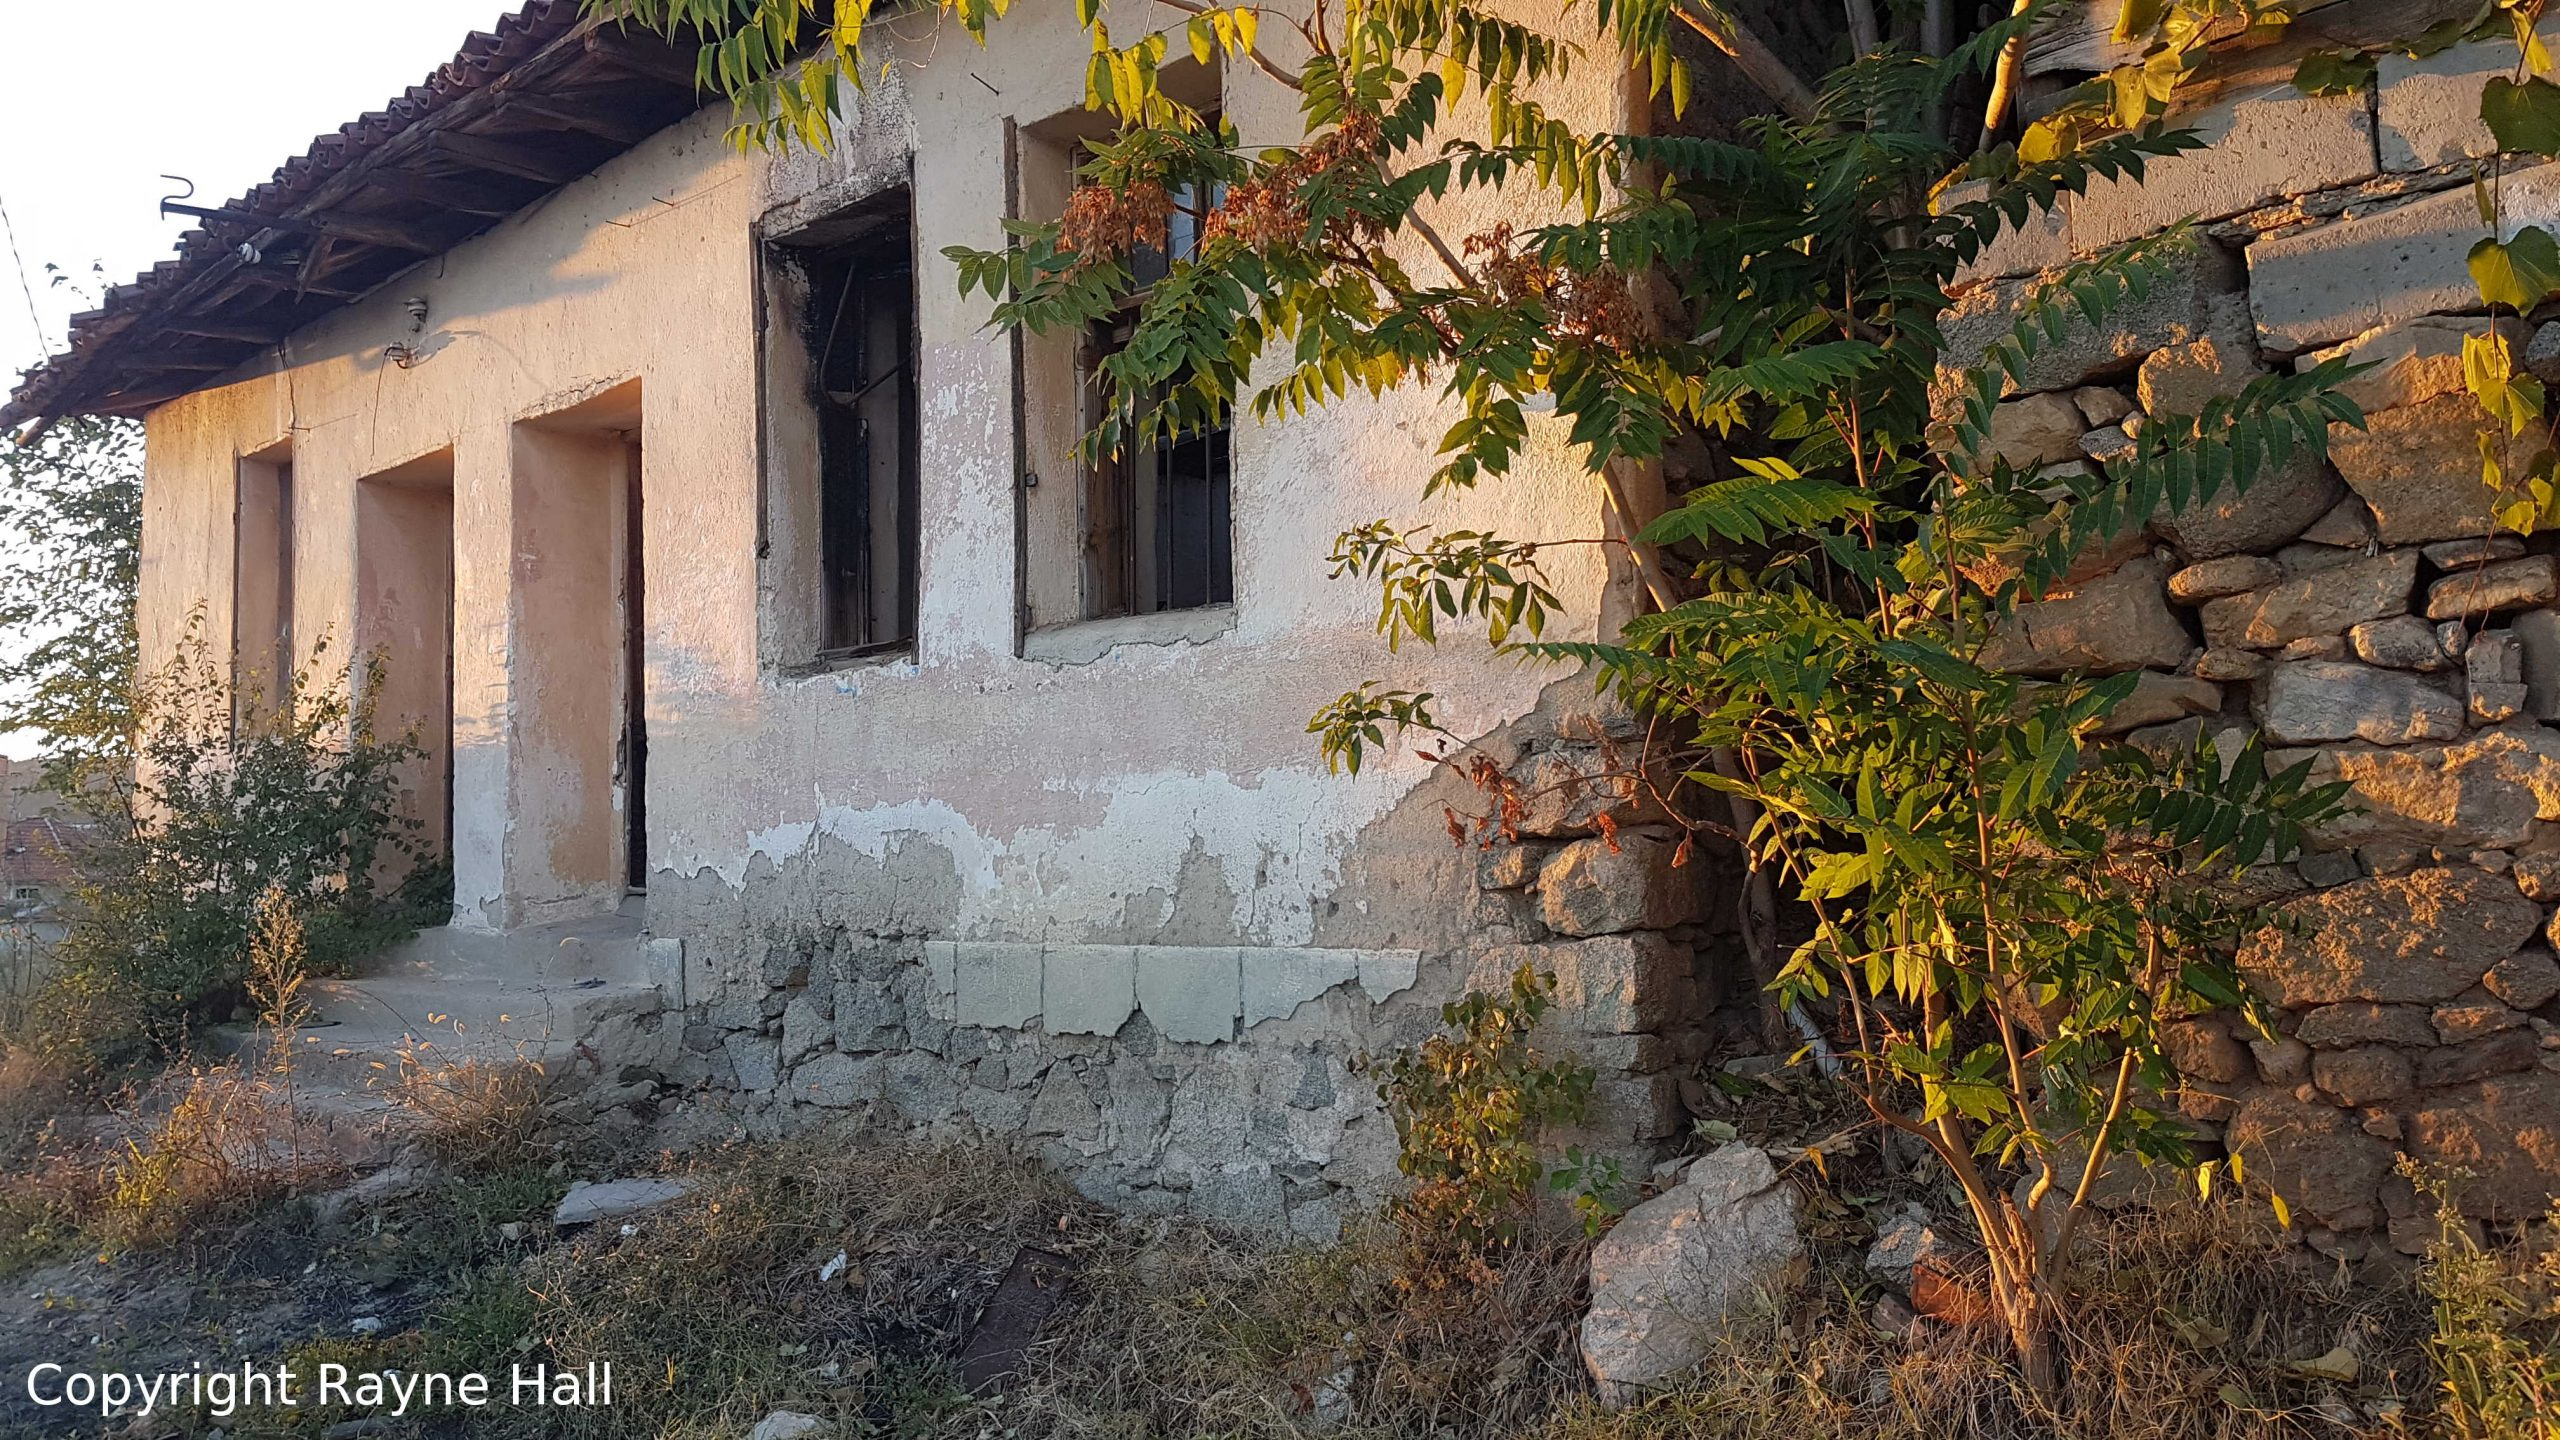 Abandoned Homes in Bulgaria: Empty or Not?